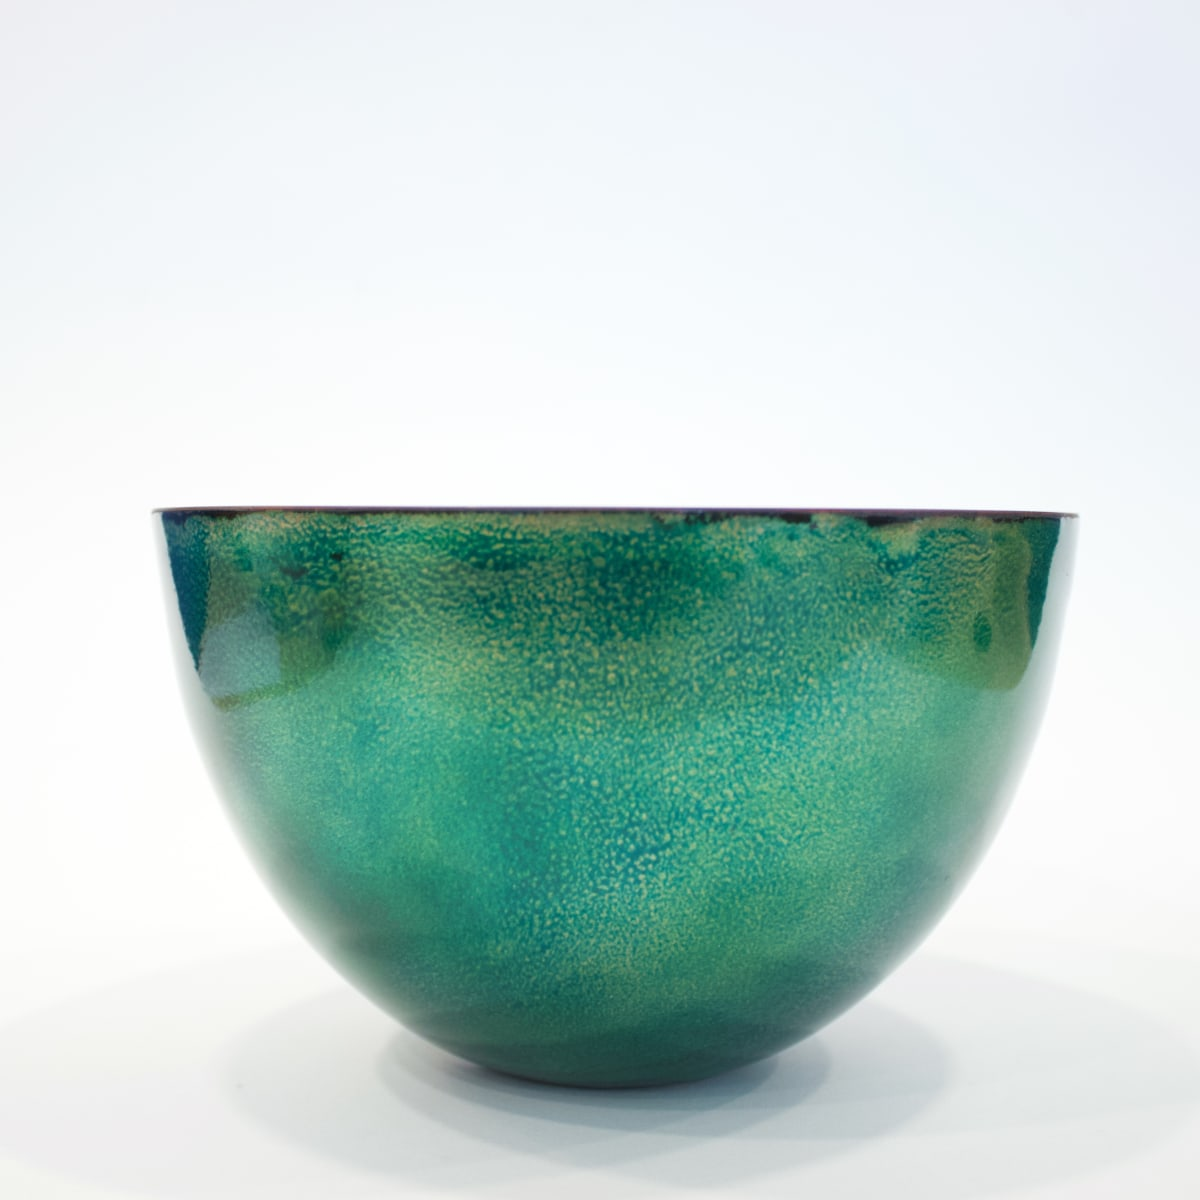 Lundsten Glazzard Large Bowl in Turquoise and Green, 2019 Copper Bowl with Enamelled Detailing 11 x 17.5 x 17.5 cm 4 3/8 x 6 7/8 x 6 7/8 in